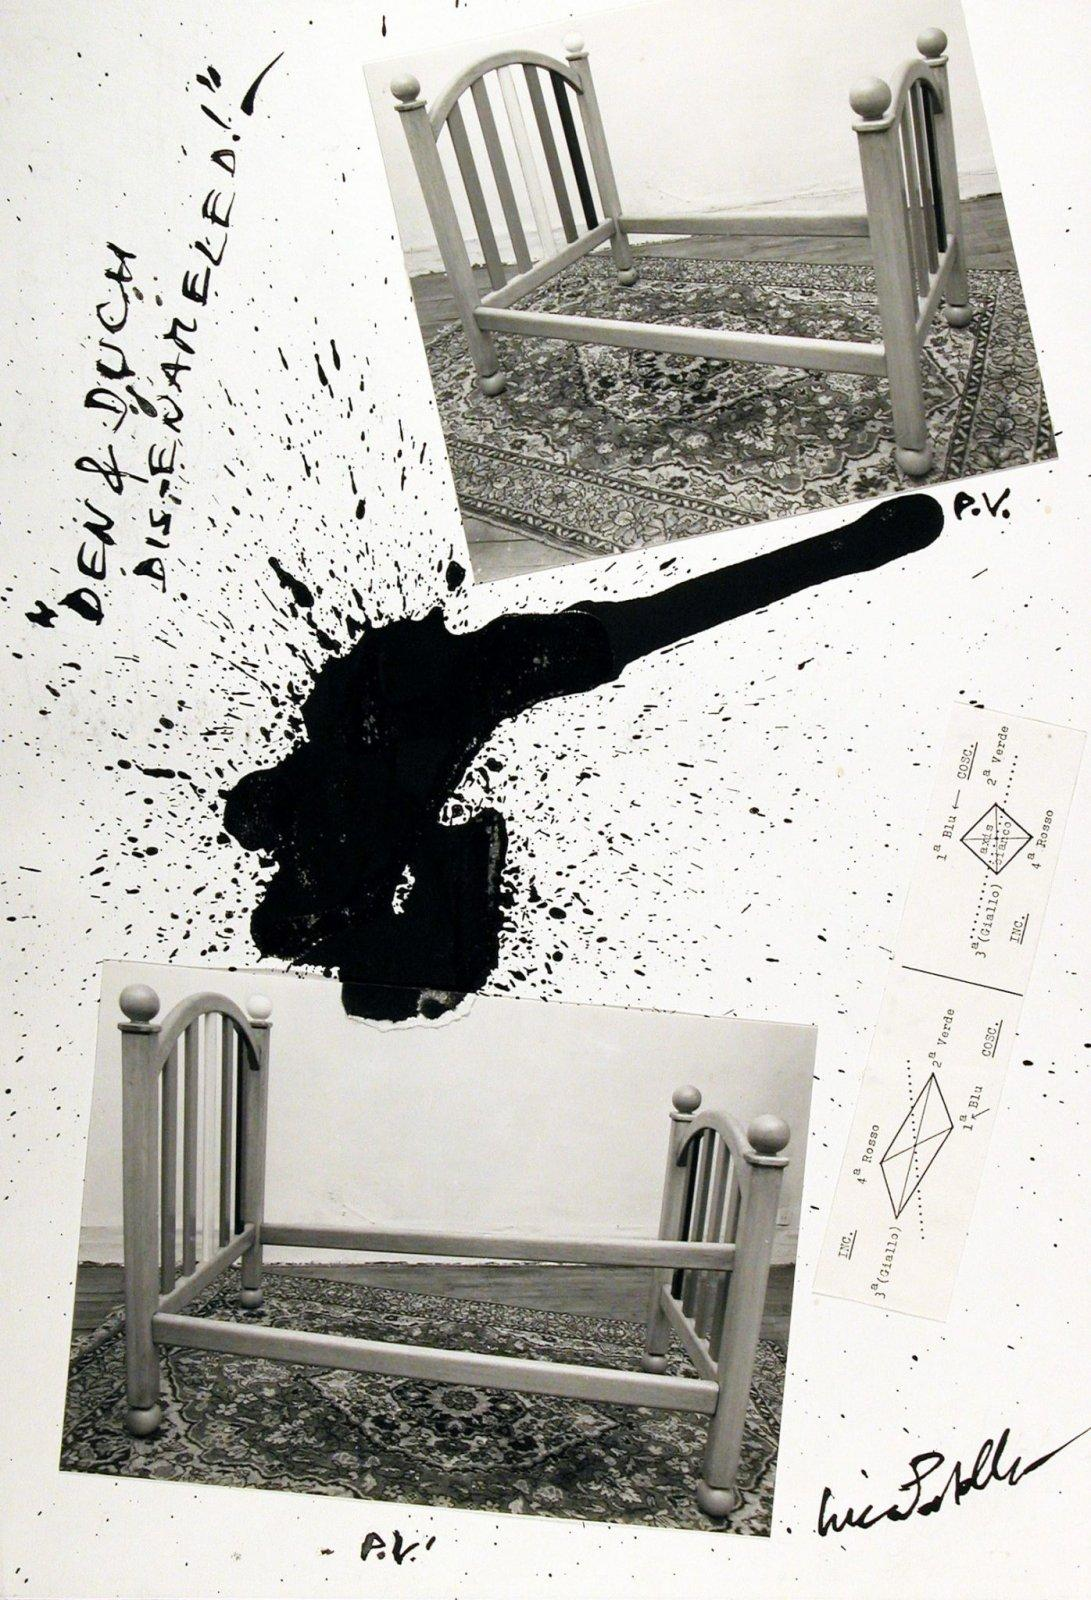 Luca Patella, Dem&Duch Dis-Enameled!, 1986, collage, 377 x 260 mm, Collezione Galleria Civica di Modena.